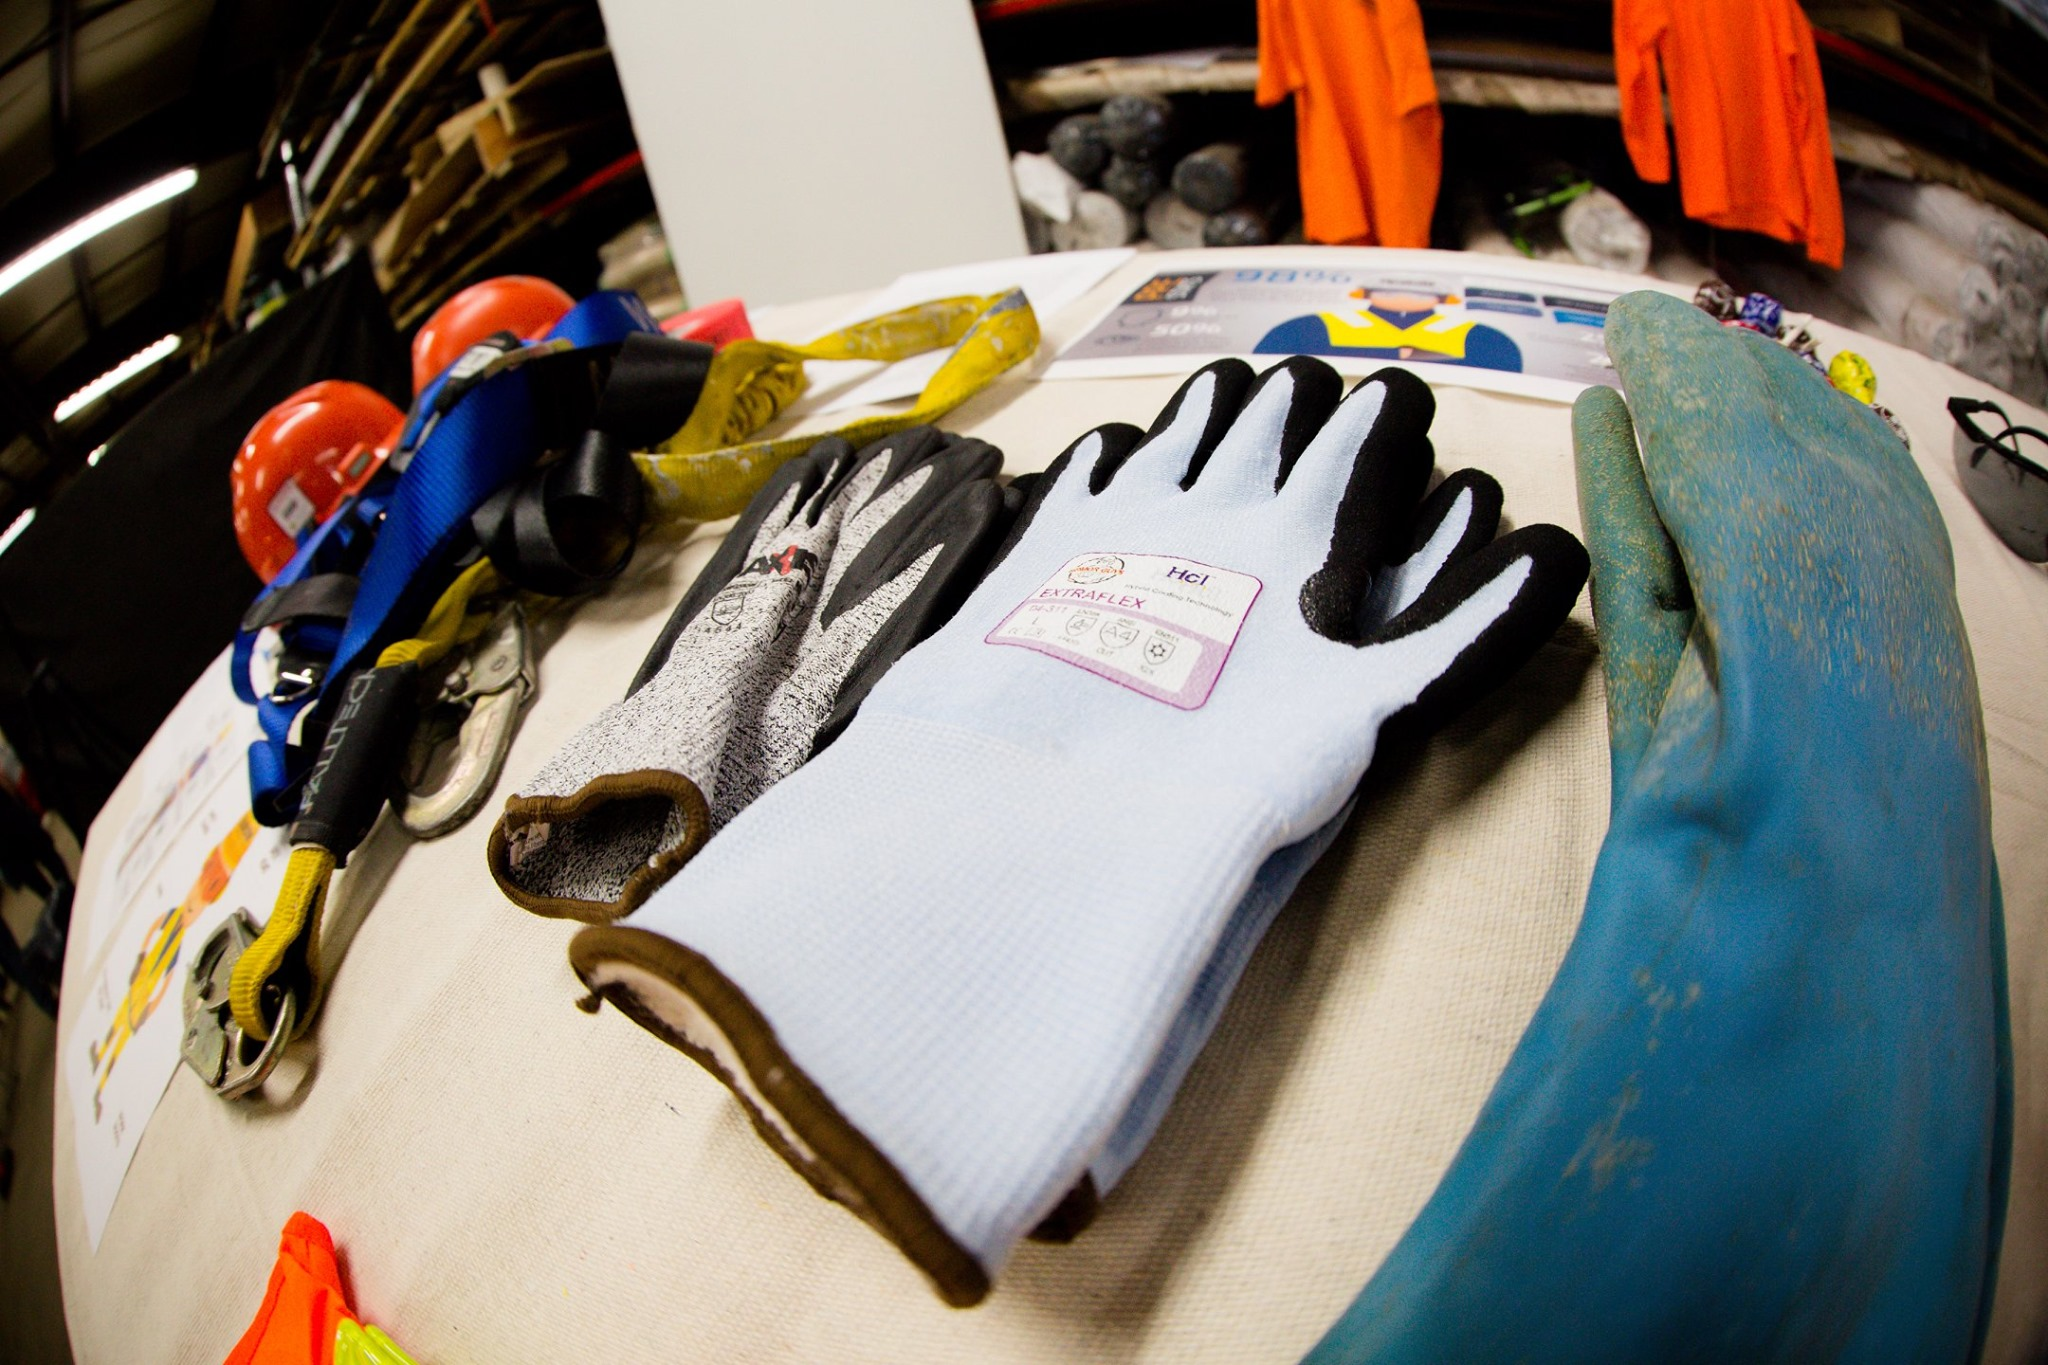 Upstate Painting - Health and Wellness - gloves